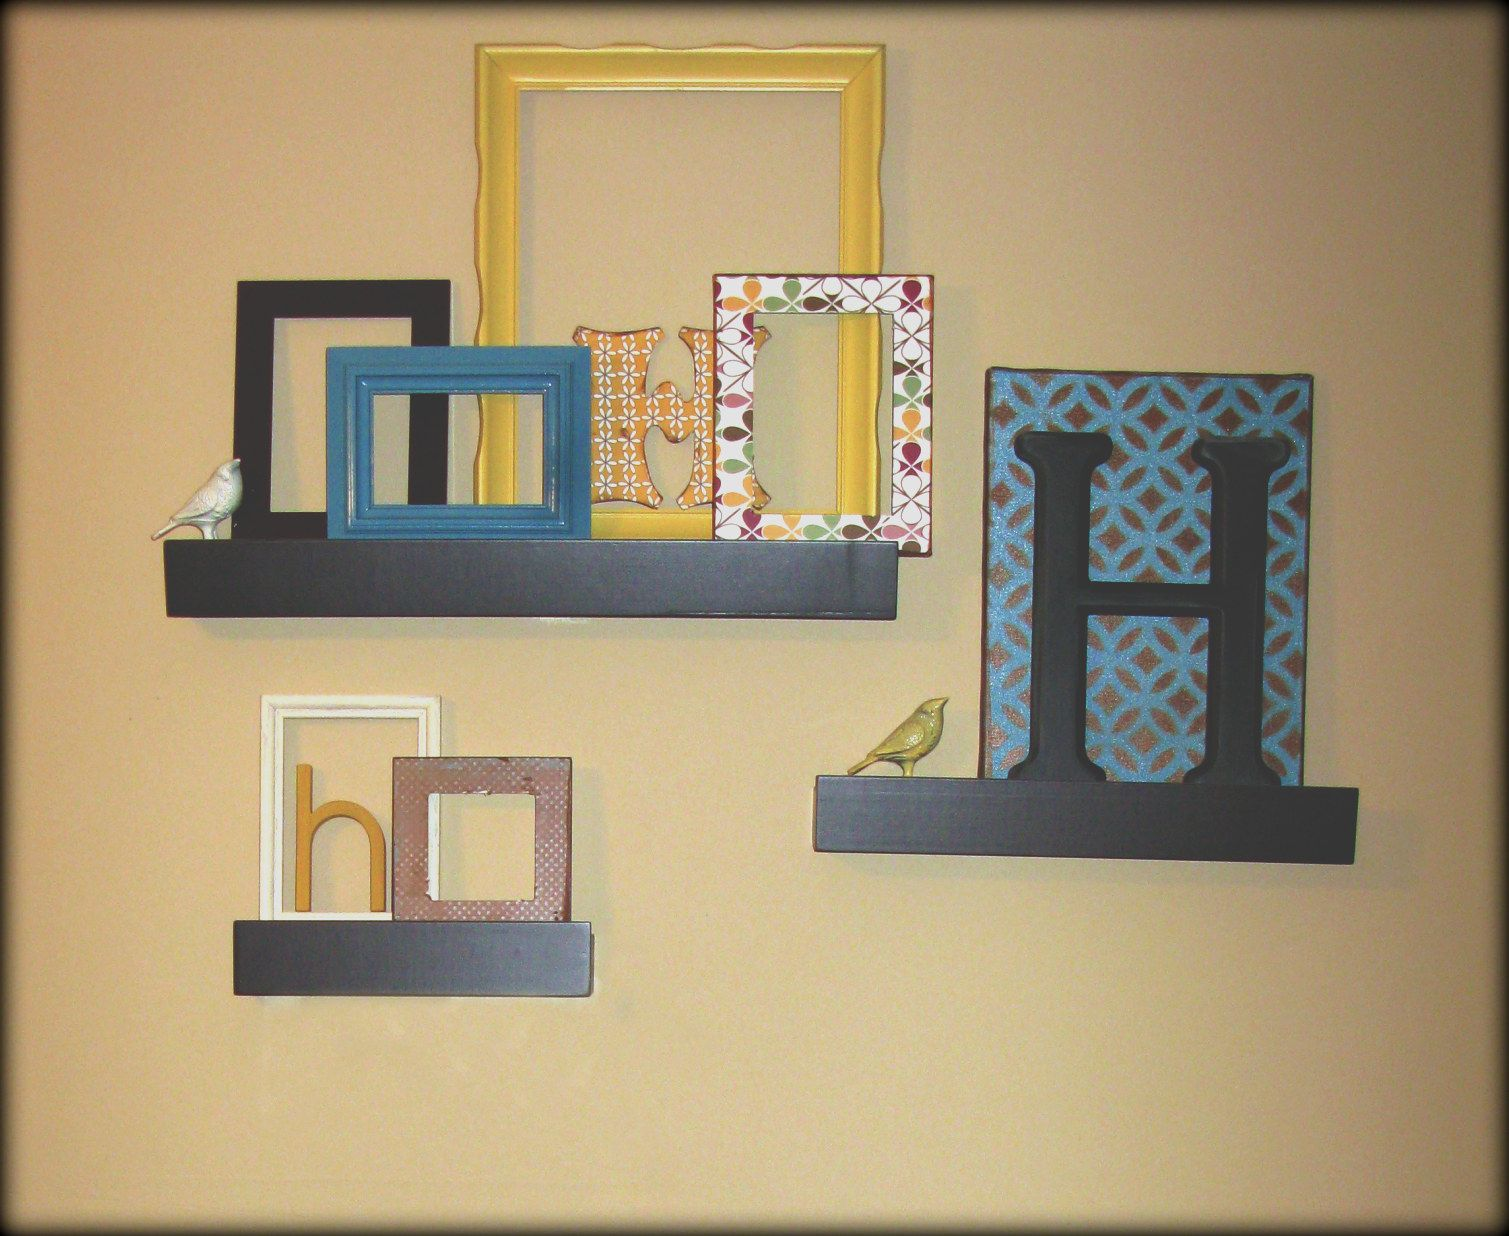 Awesome Framed Letter Wall Art Photos - The Wall Art Decorations ...